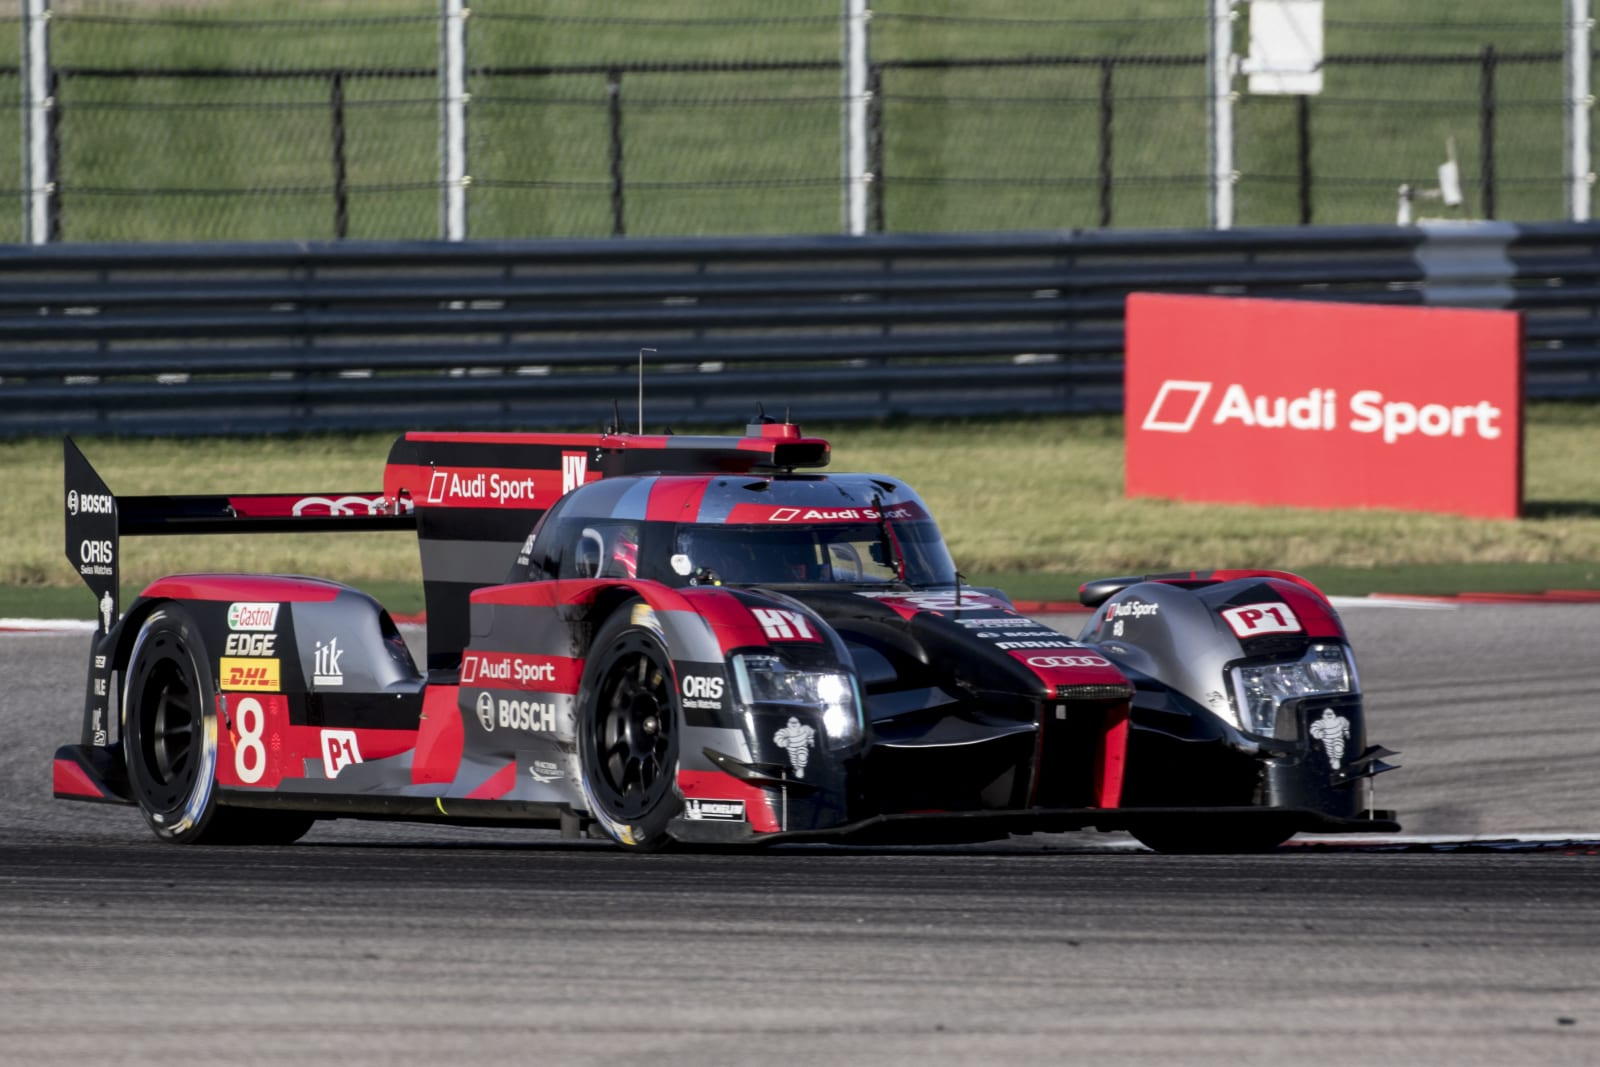 Audi drops Le Mans in favor of